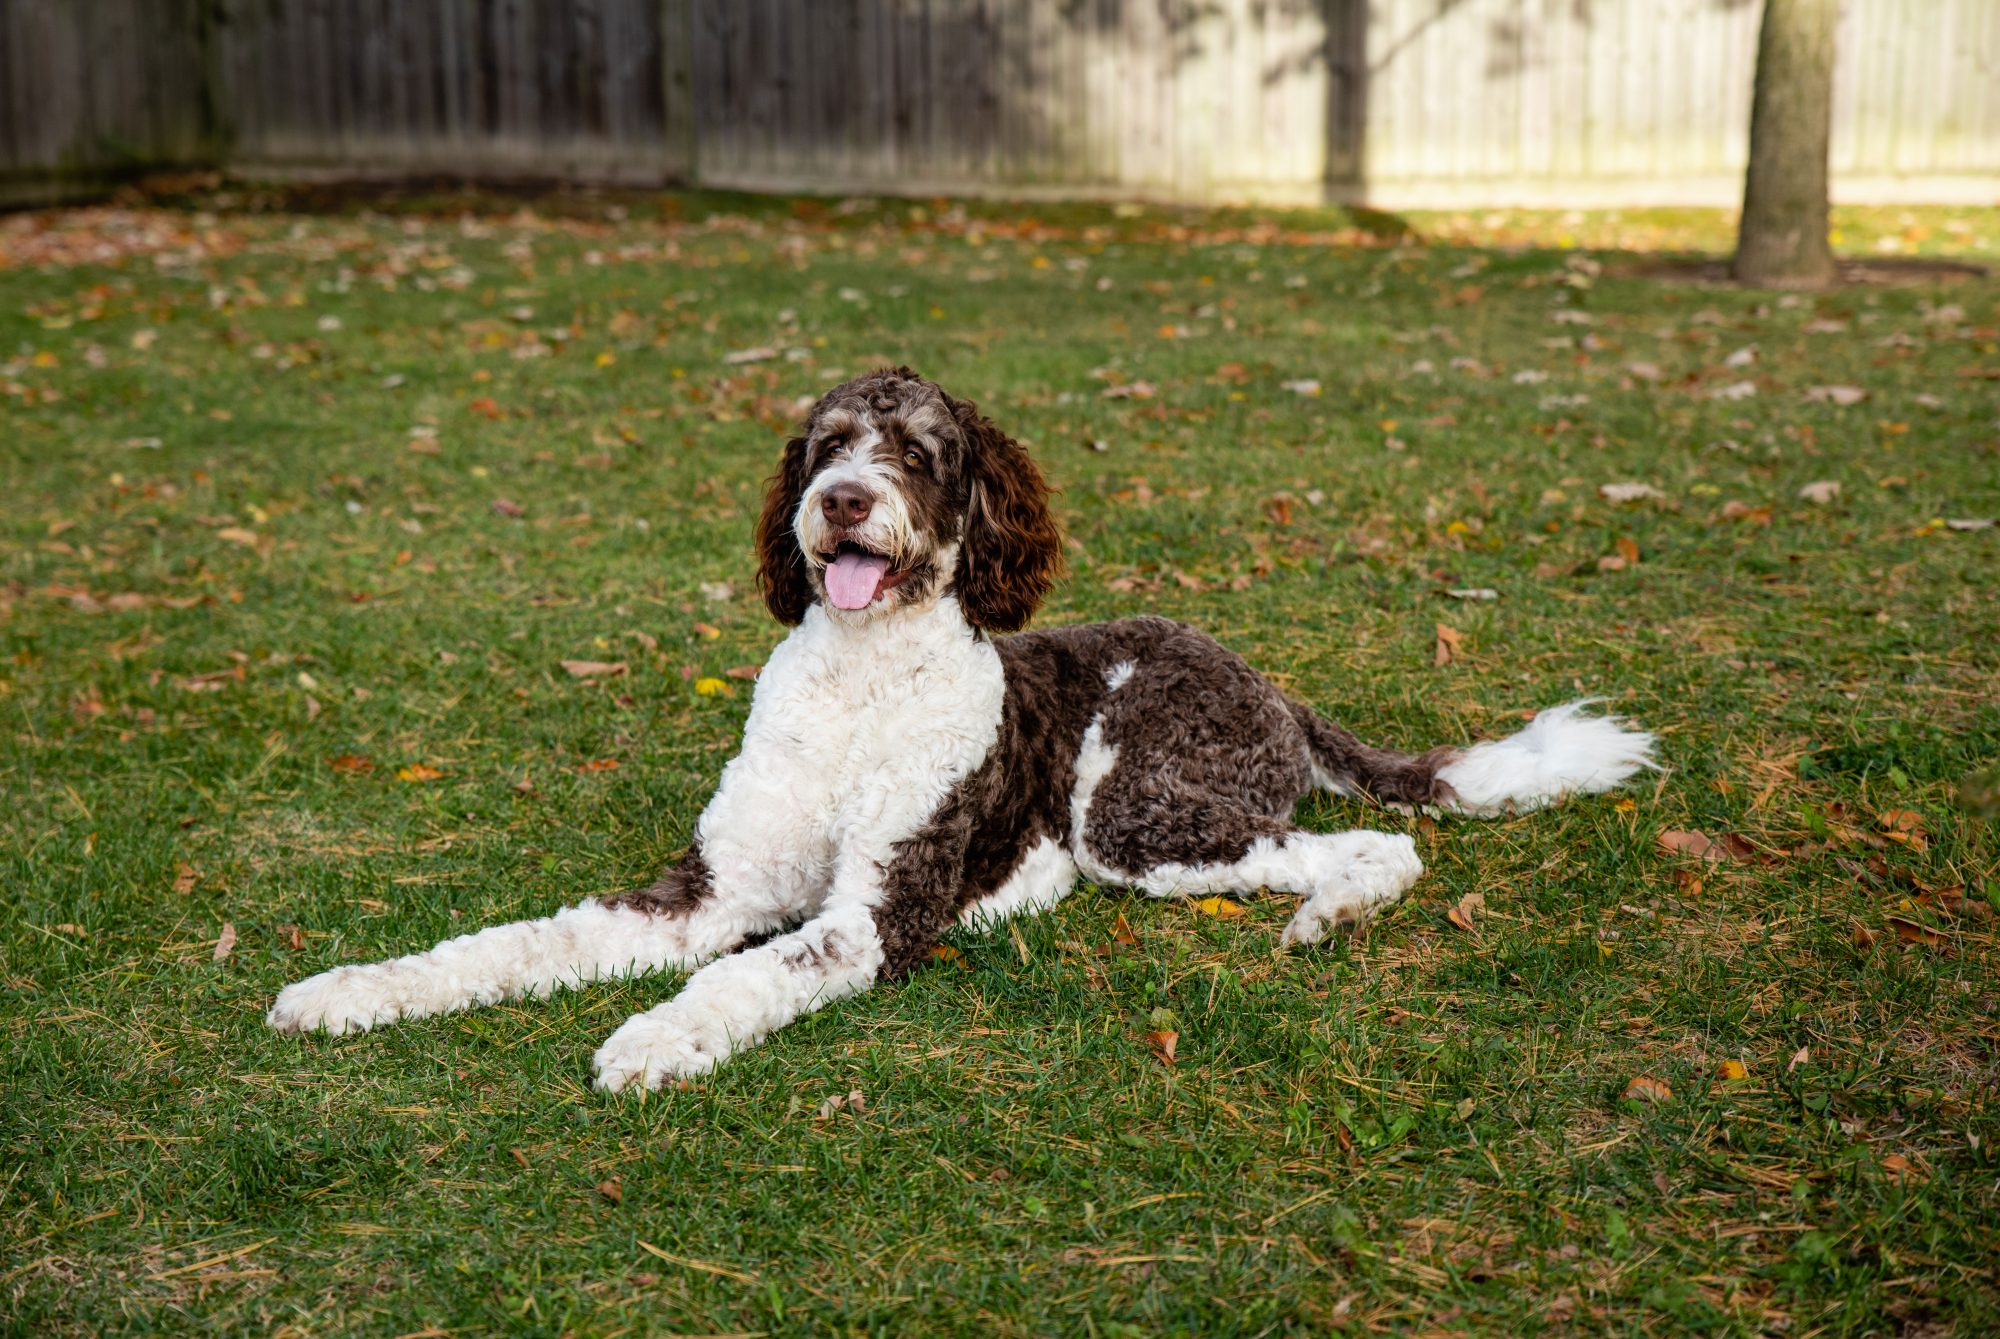 Bernedoodle Dog Laying in the Grass